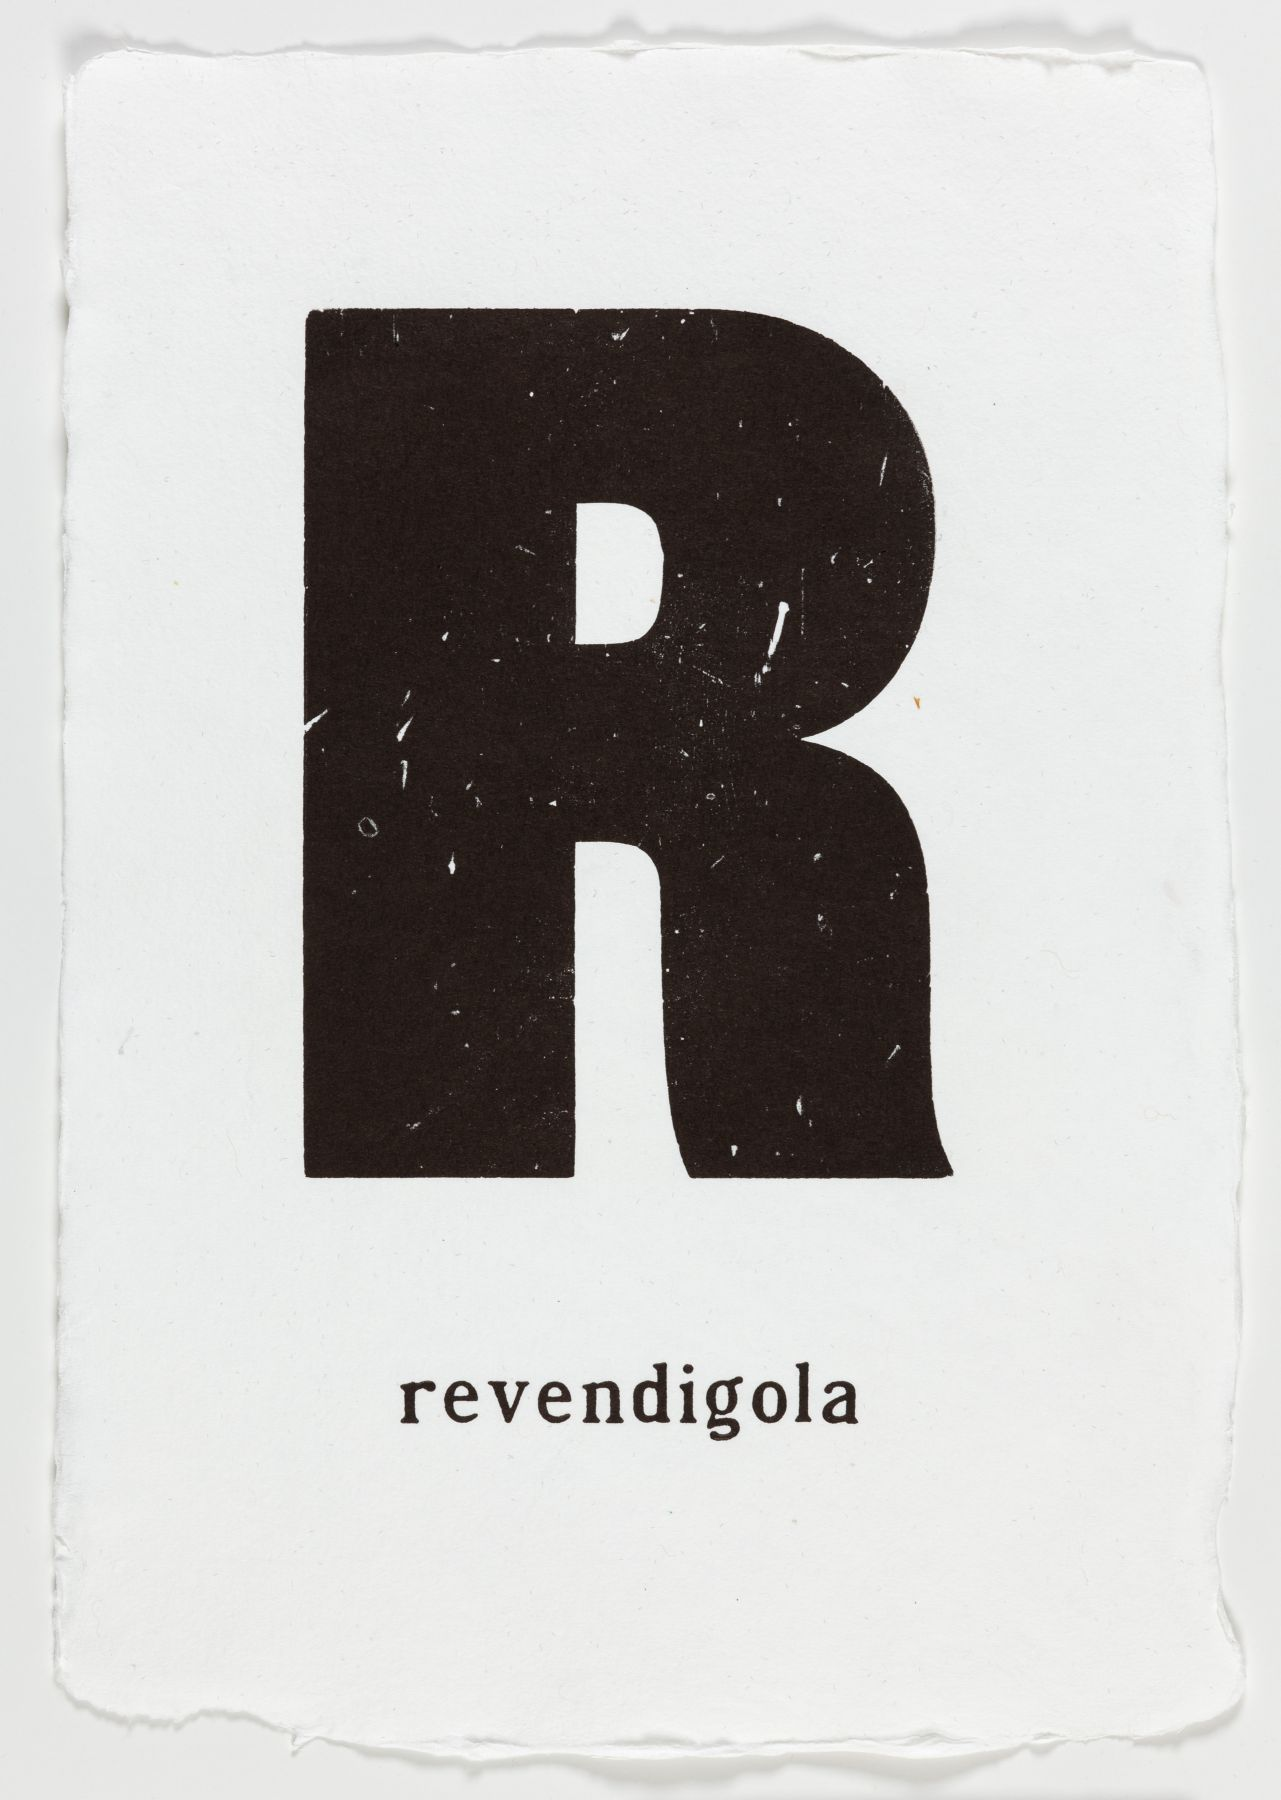 "Morgan O'Hara. LOST AND FOUND IN VENICE: revendigola. 2017. Letterpress printer's ink on handmade paper. 13 1/4"" x 9 3/4"" at Anita Rogers Gallery"